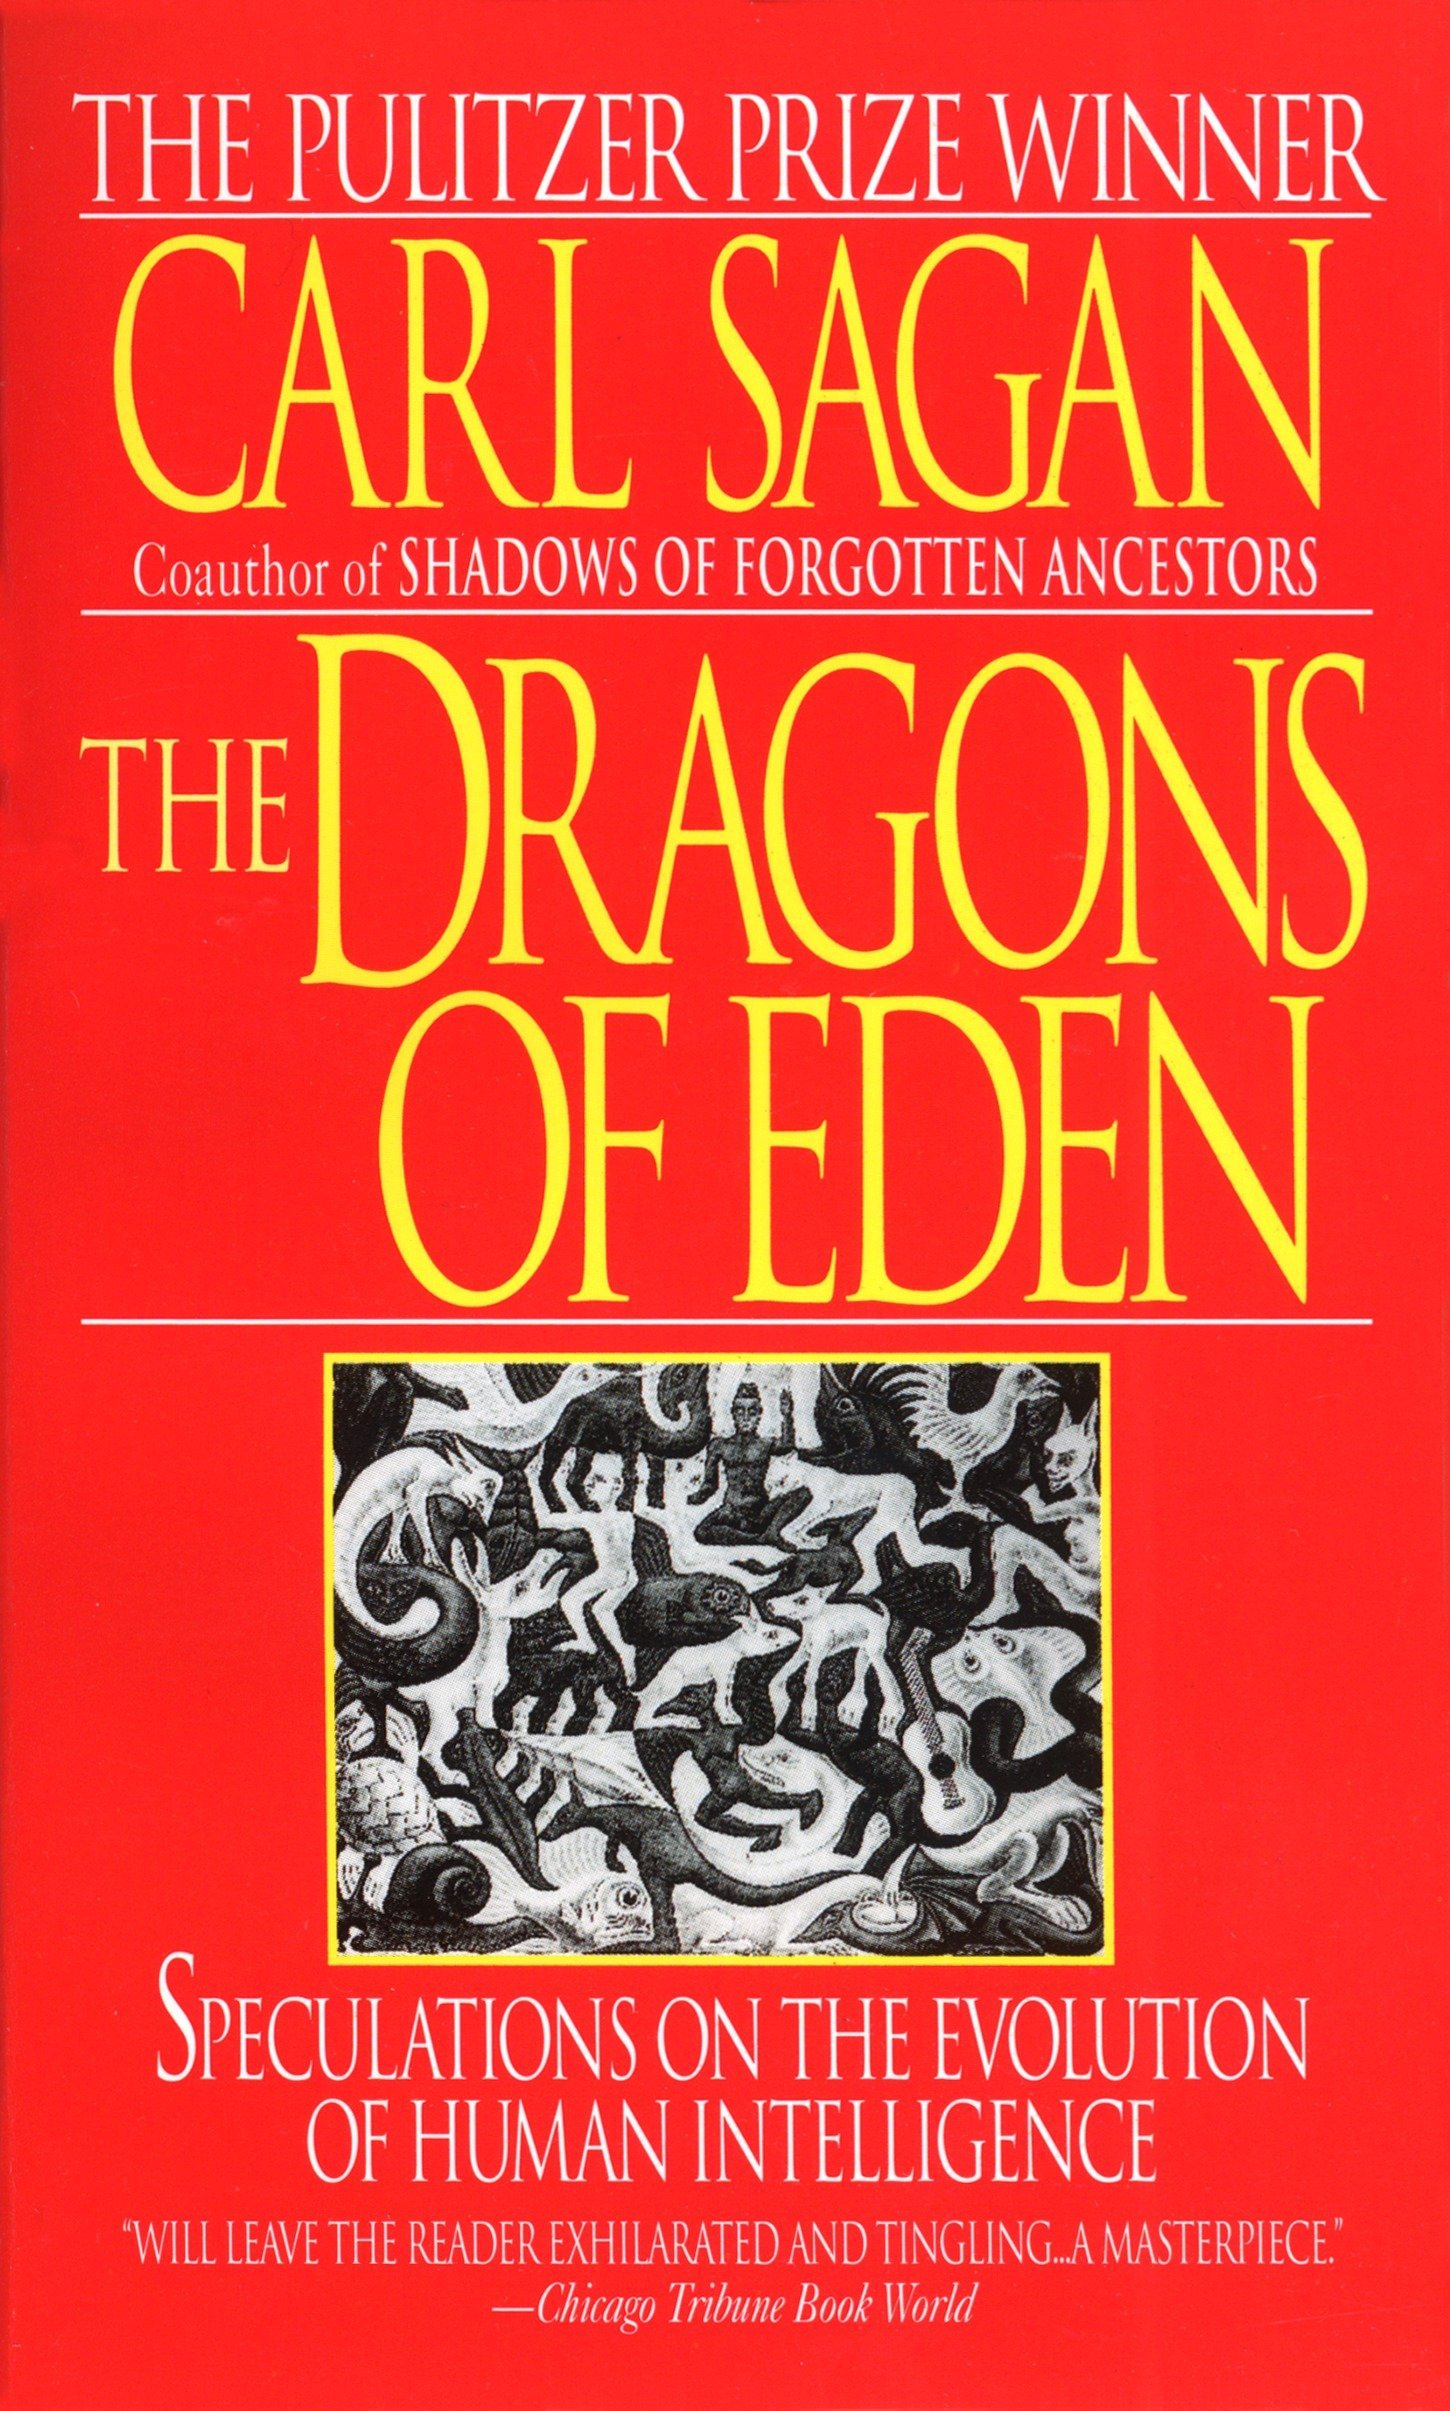 The Dragons of Eden: Speculations on the Evolution of Human